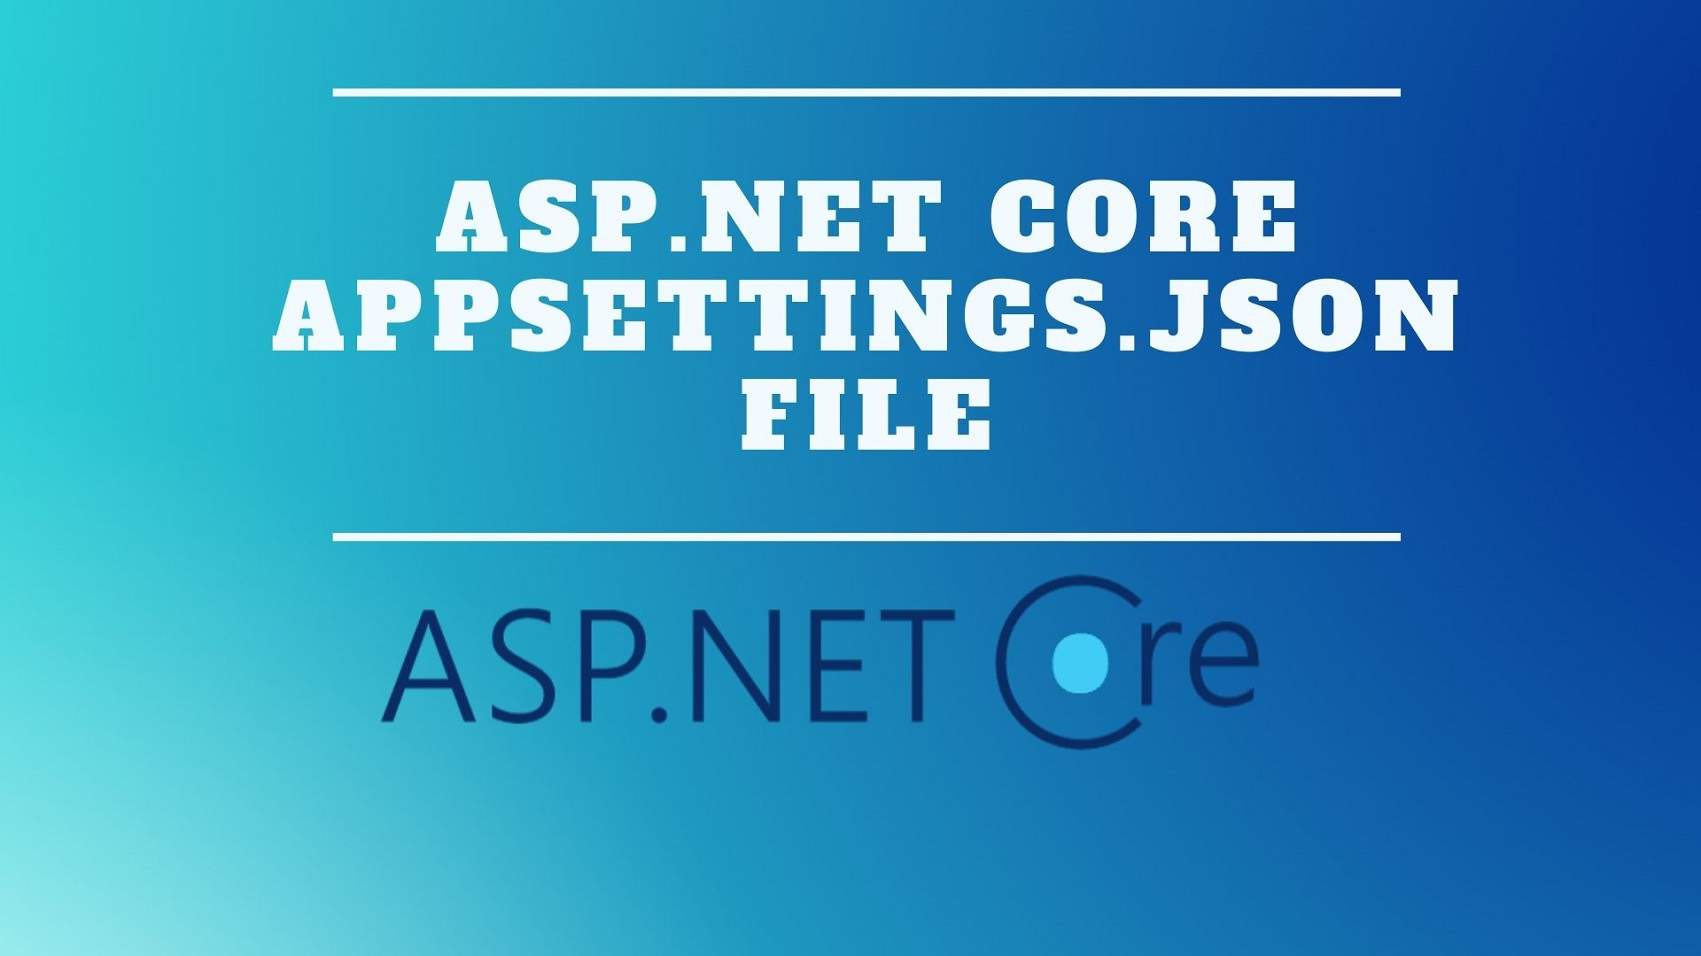 ASP.NET Core appsettings.json file